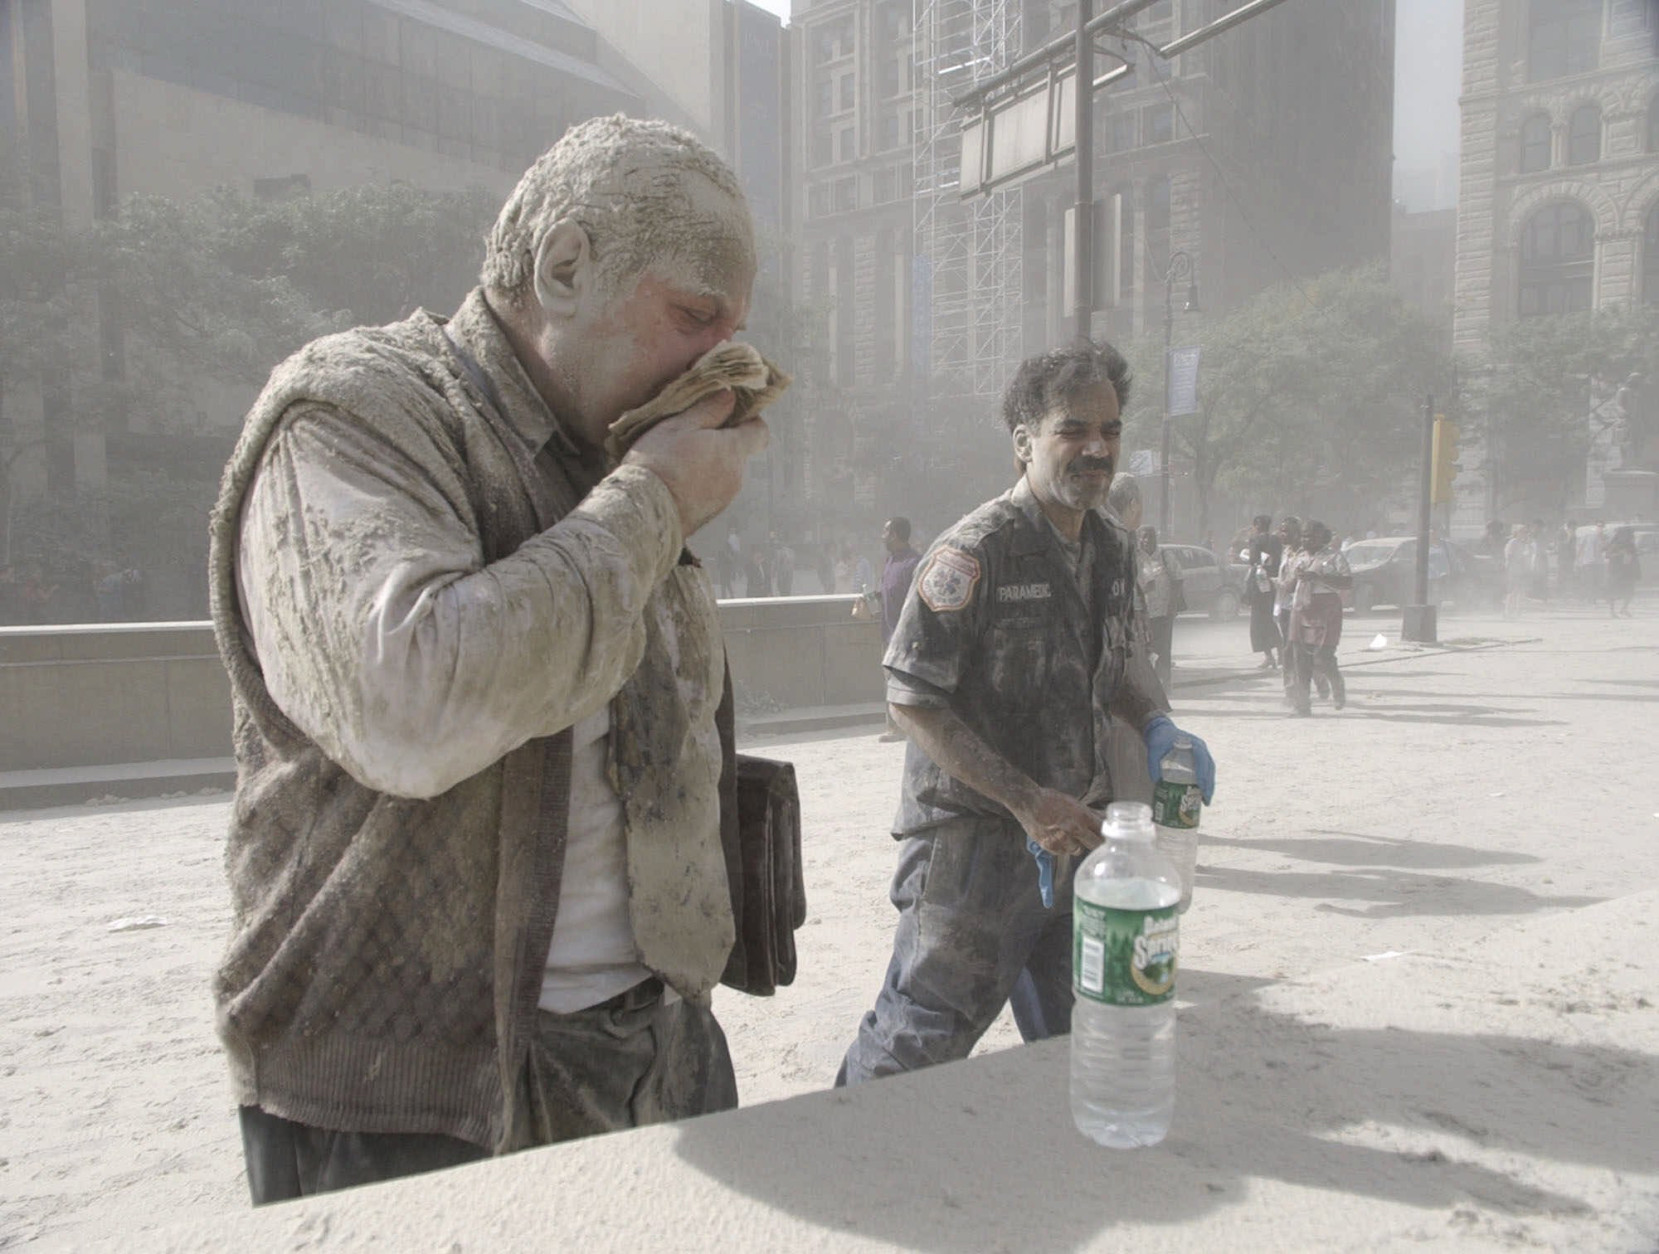 FILE - In this Sept. 11, 2001 file photo, a man wipes ash from his face after terrorists flew two airplanes into the World Trade Center towers, causing them to collapse. A federal health official is expected to announce in early June, 2012, whether people with cancer will be covered by an aid program for New Yorkers sickened by World Trade Center dust. An advisory committee recommended in March that the government open up the $4.3 billion program to people who developed cancers after being exposed to the toxic soot that fell on Manhattan when the towers collapsed. (AP Photo/Amy Sancetta, File)